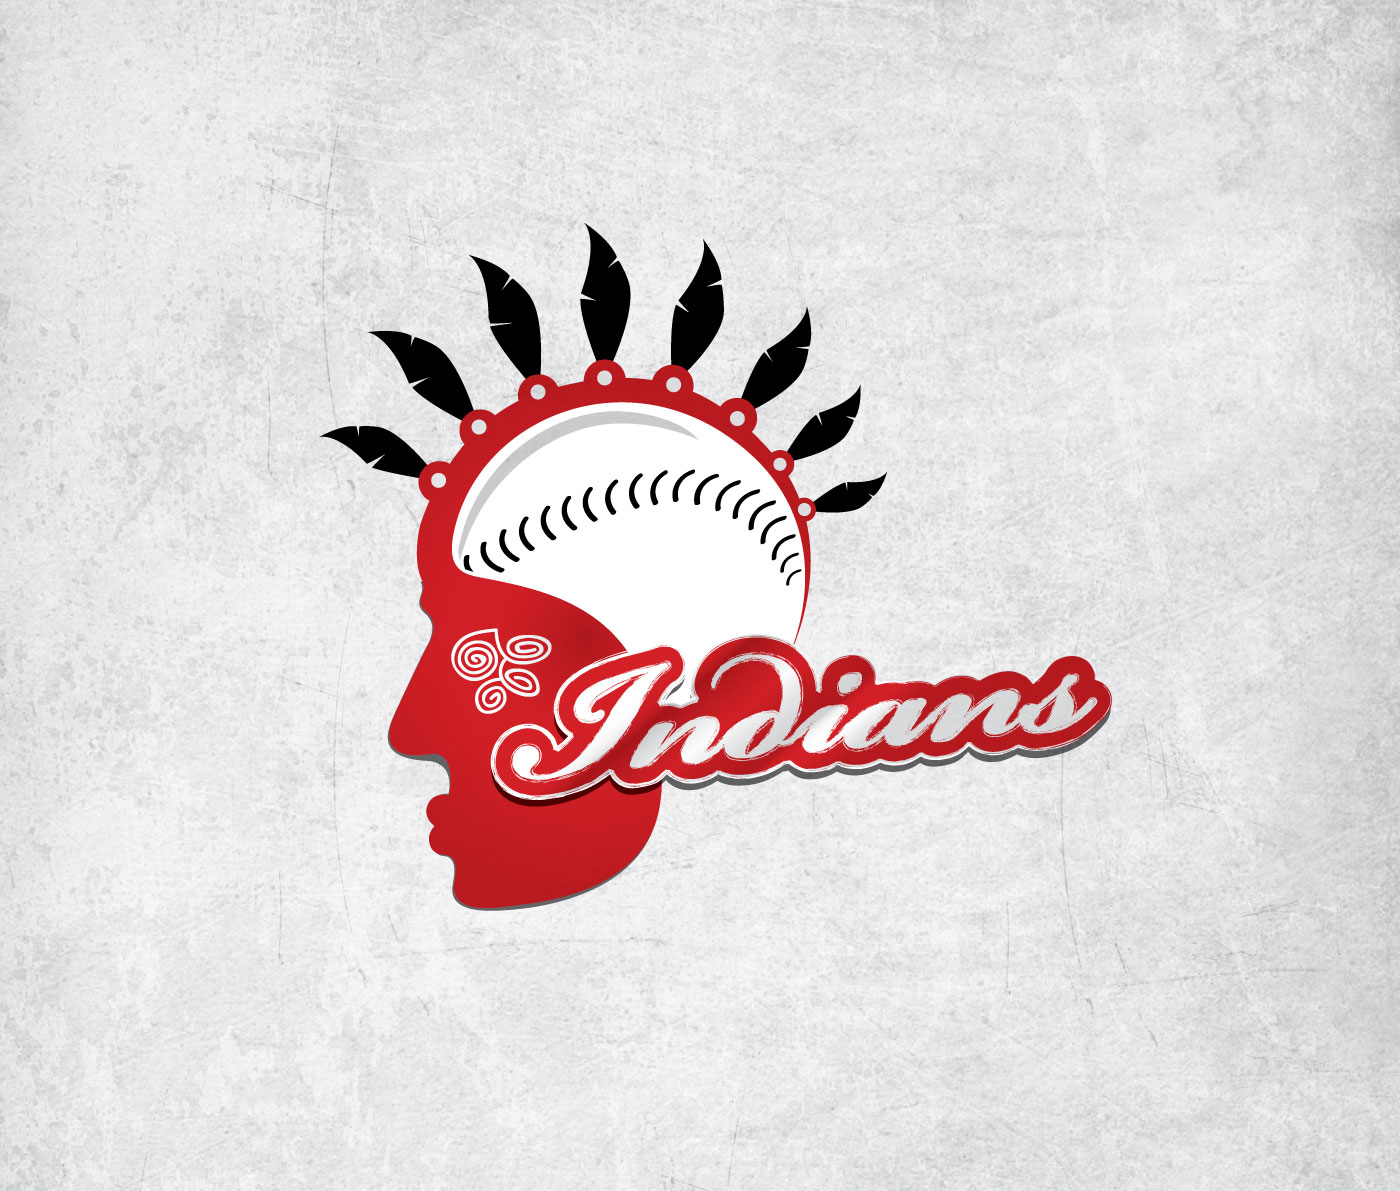 Indians - Softball team